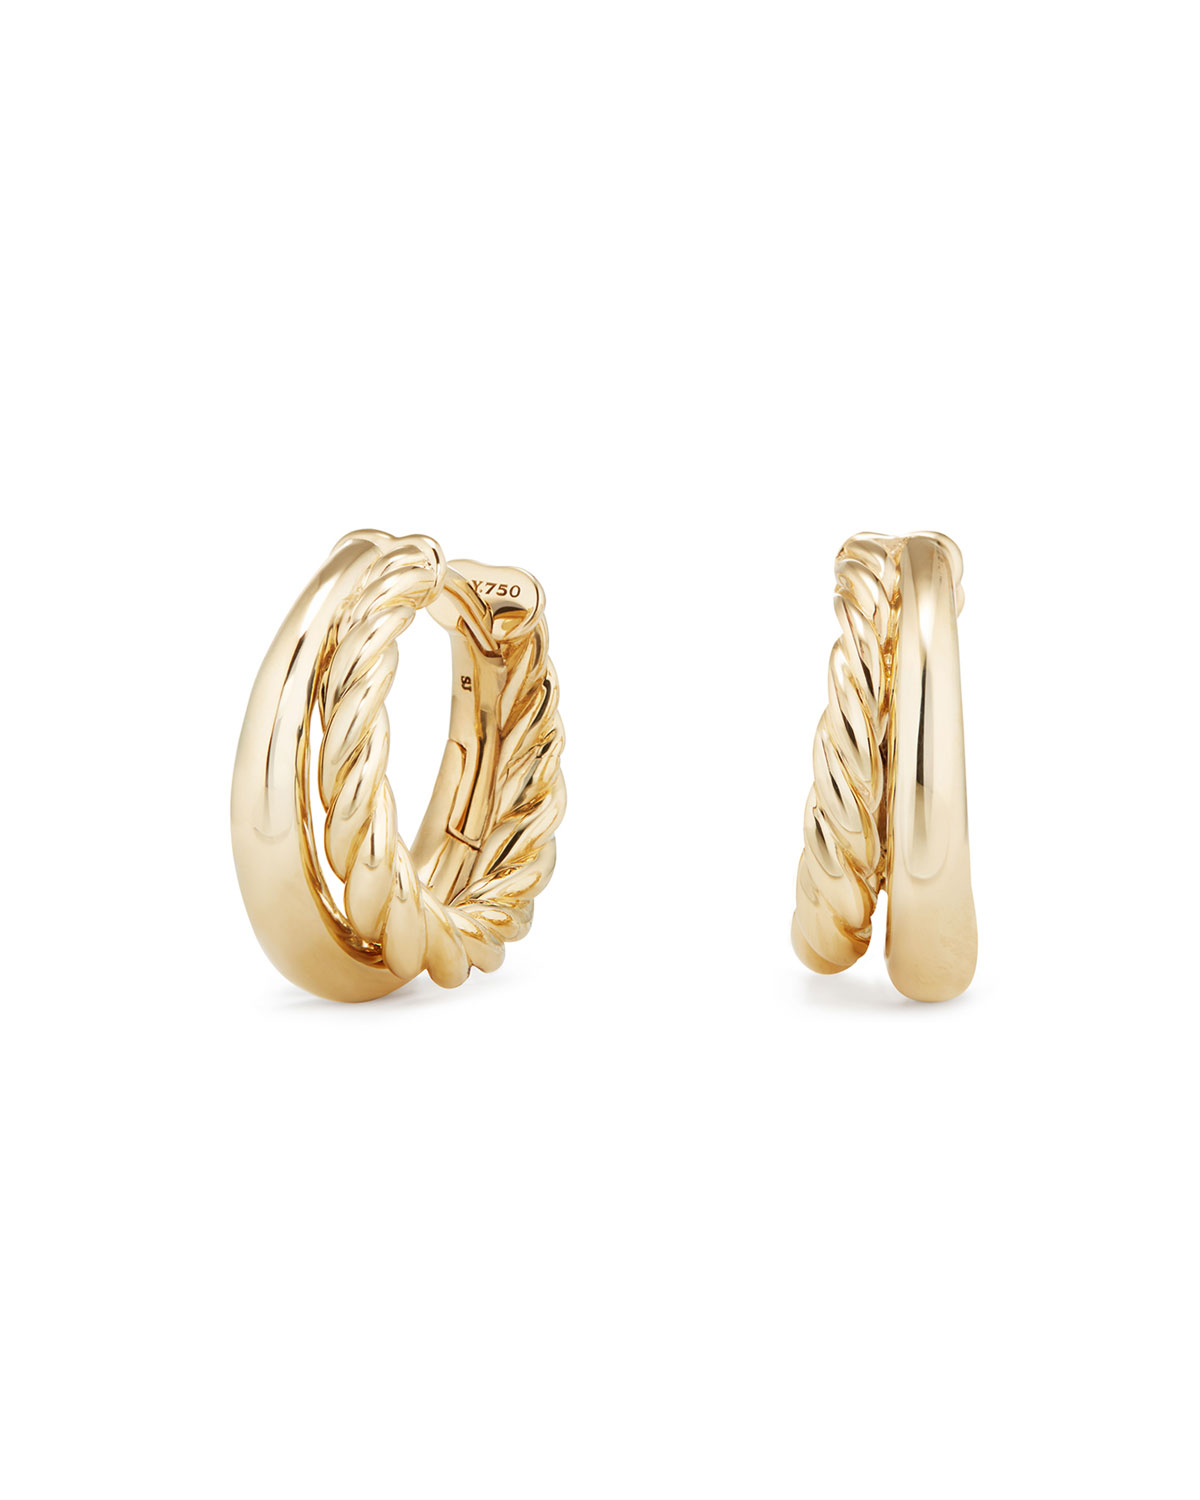 25 5mm Pure Form 18k Gold Hoop Earrings